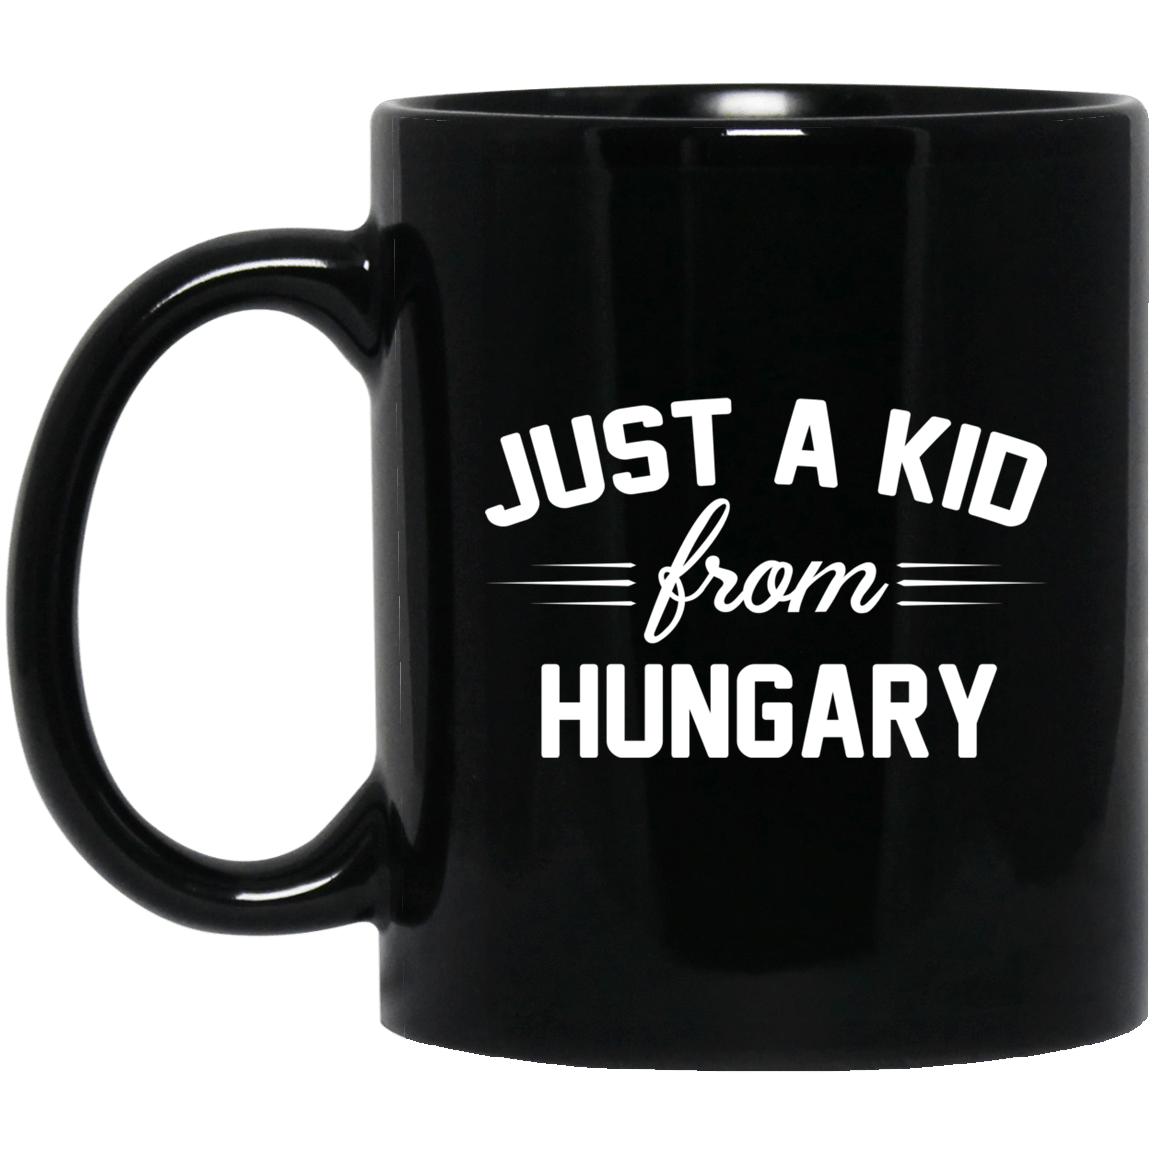 Just A Kid Store | Hungary Mug 1065-10181-72111203-49307 - Tee Ript